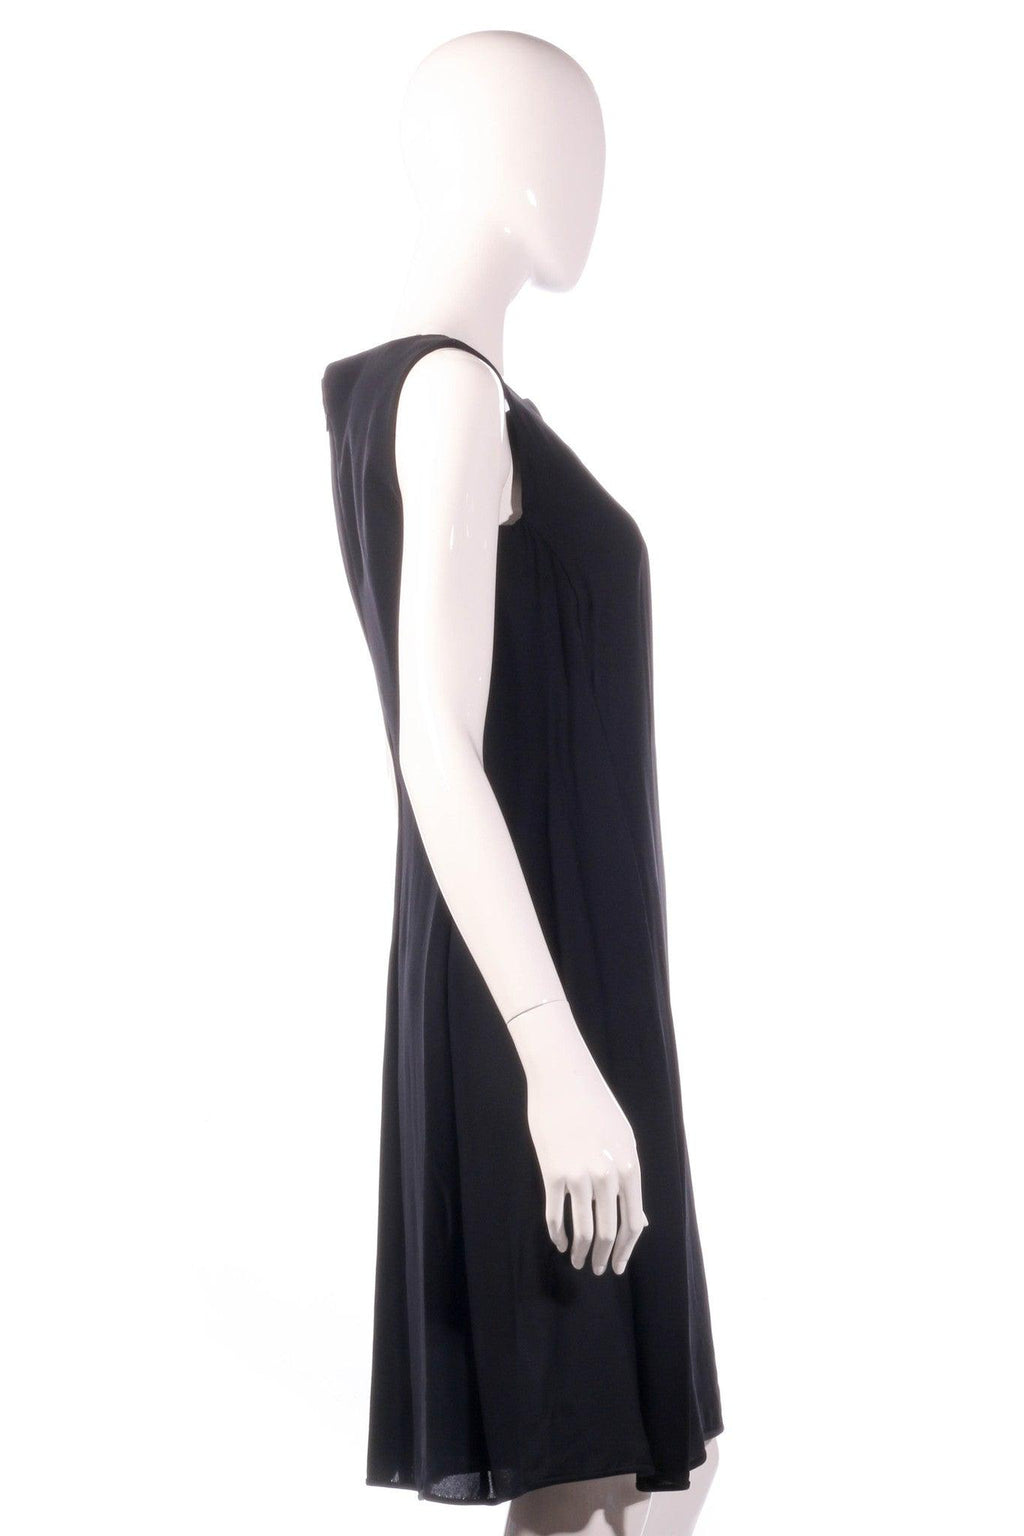 Gianni Versace couture short black dress